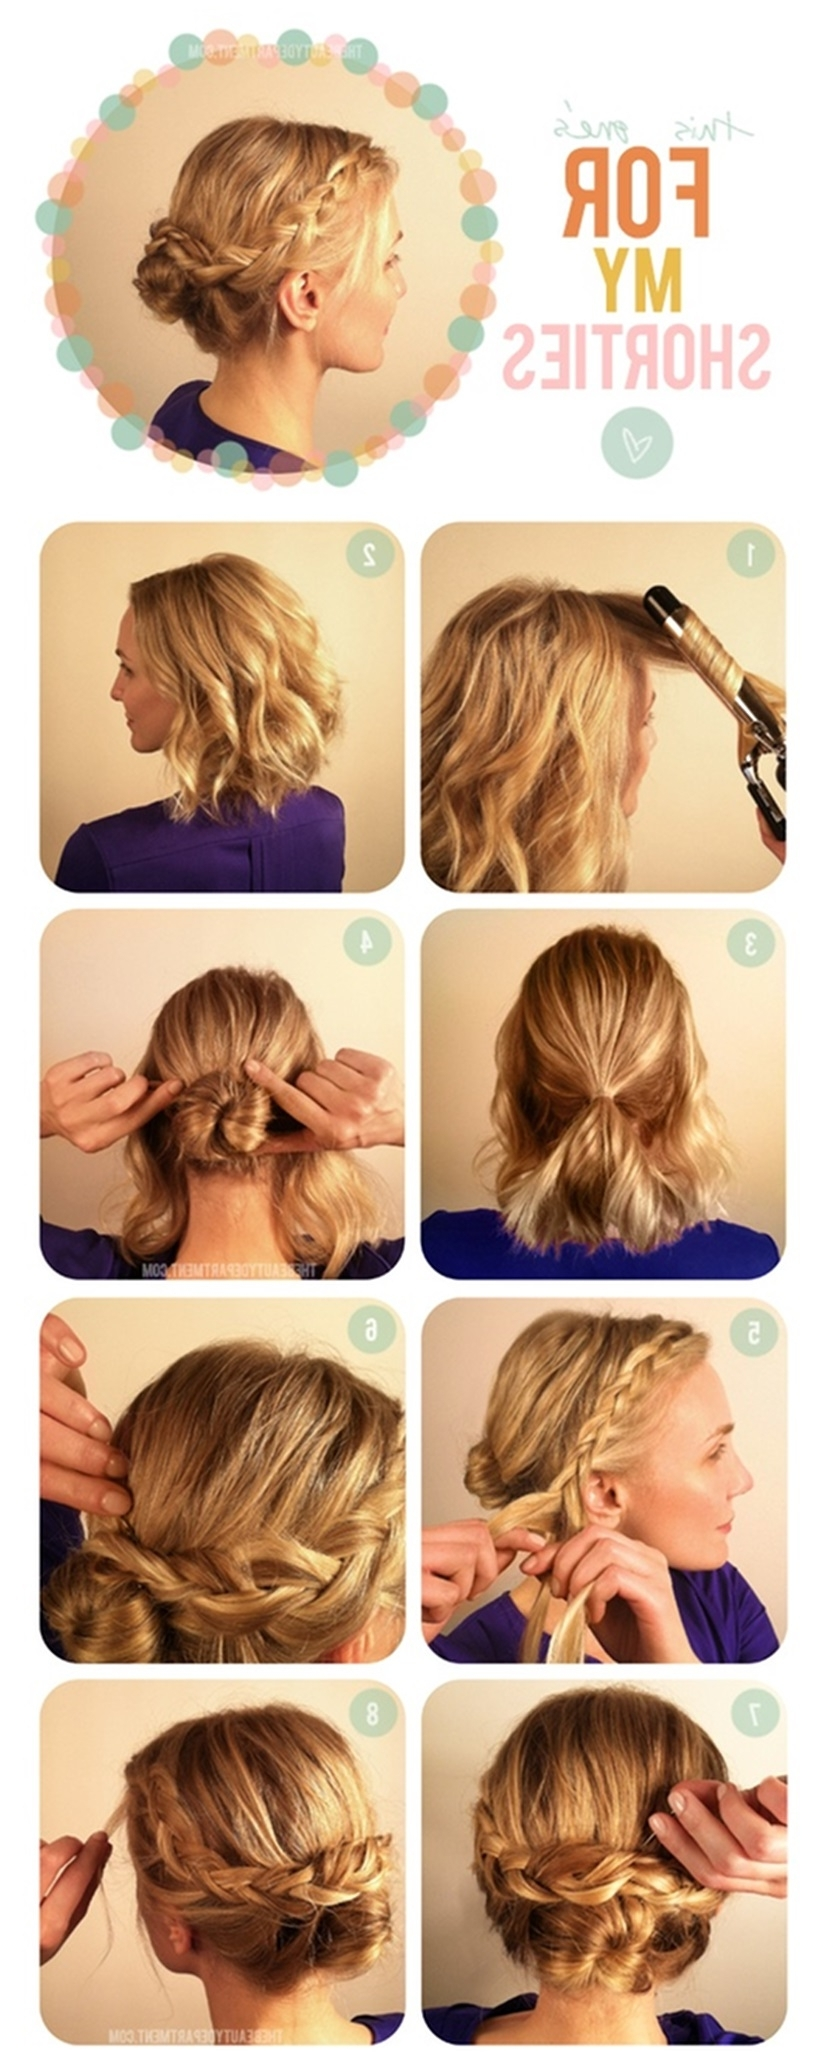 15 Collection of Easy Updo Hairstyles For Medium Hair To Do Yourself